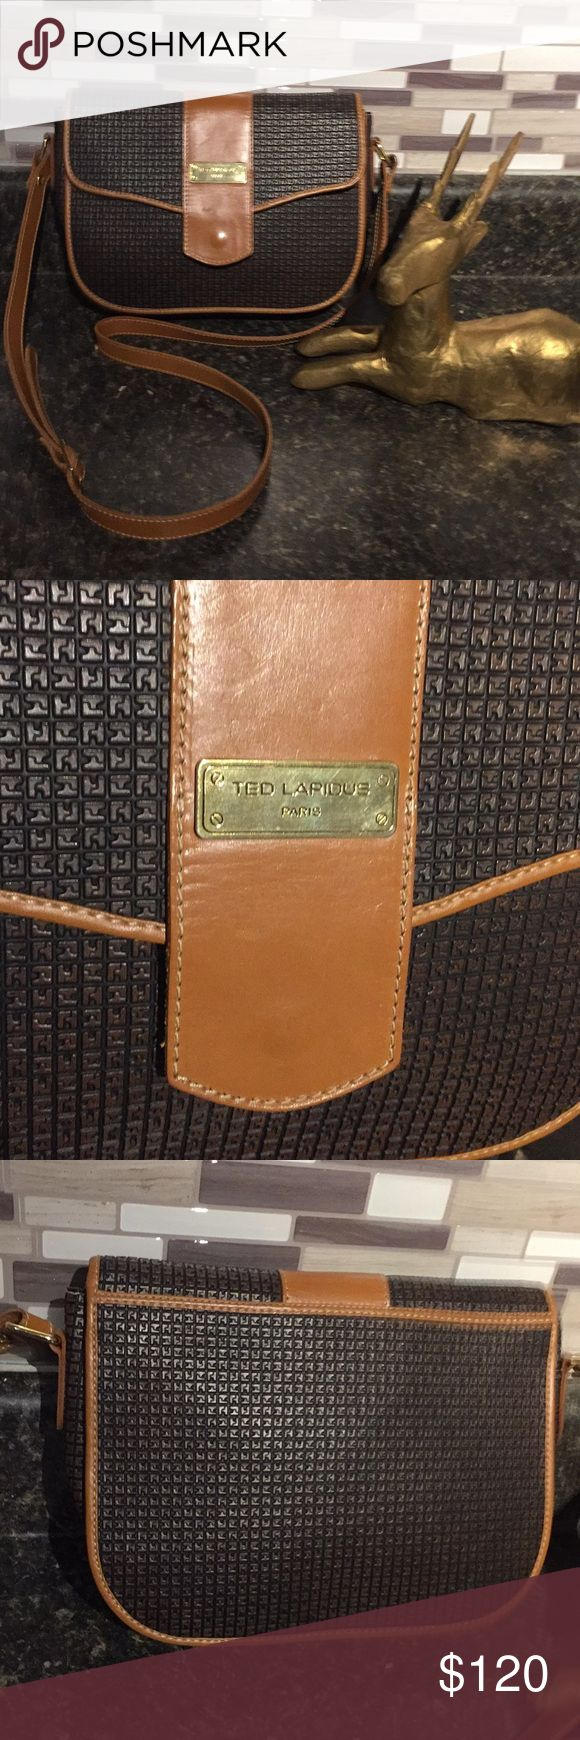 Ted lapidus crossbody Luxurious limited edition calf skin leather bag. Excellent condition. Flawless inside and out. Quality handbag. Made in Paris. See photos for measurements. I TRADE ted lapidus Bags